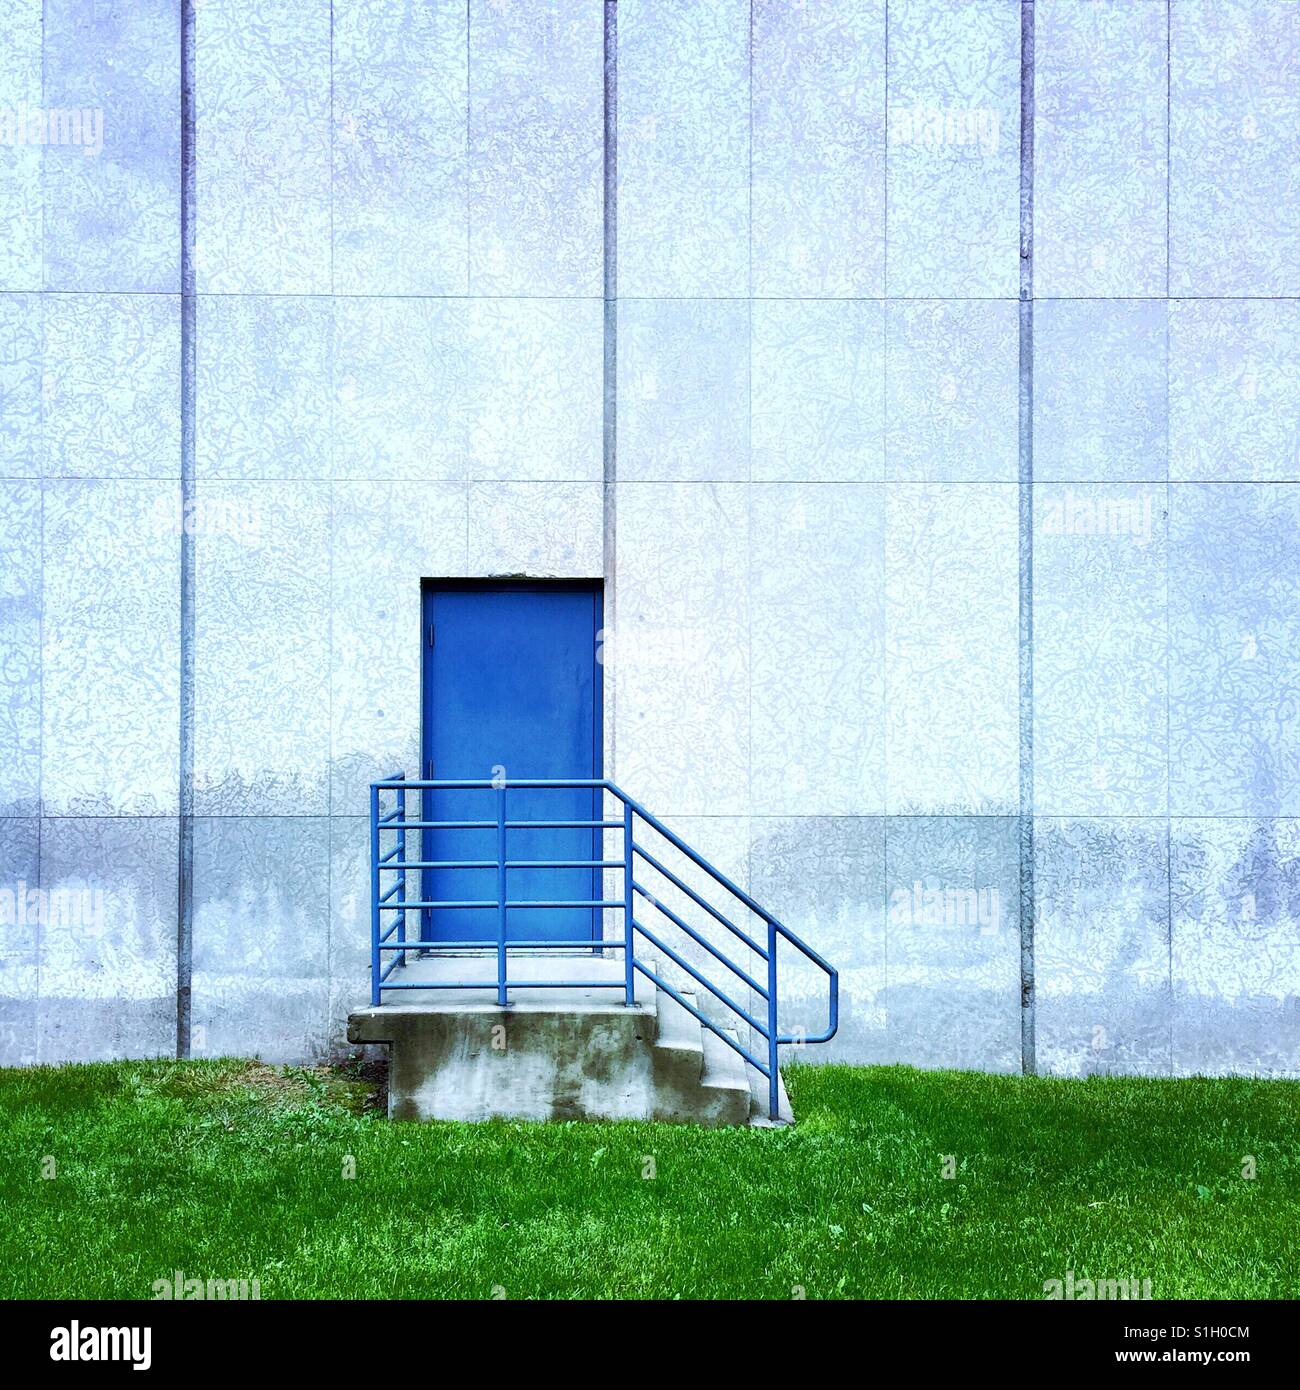 A simple composition of a blue door on the side of the building - Stock Image